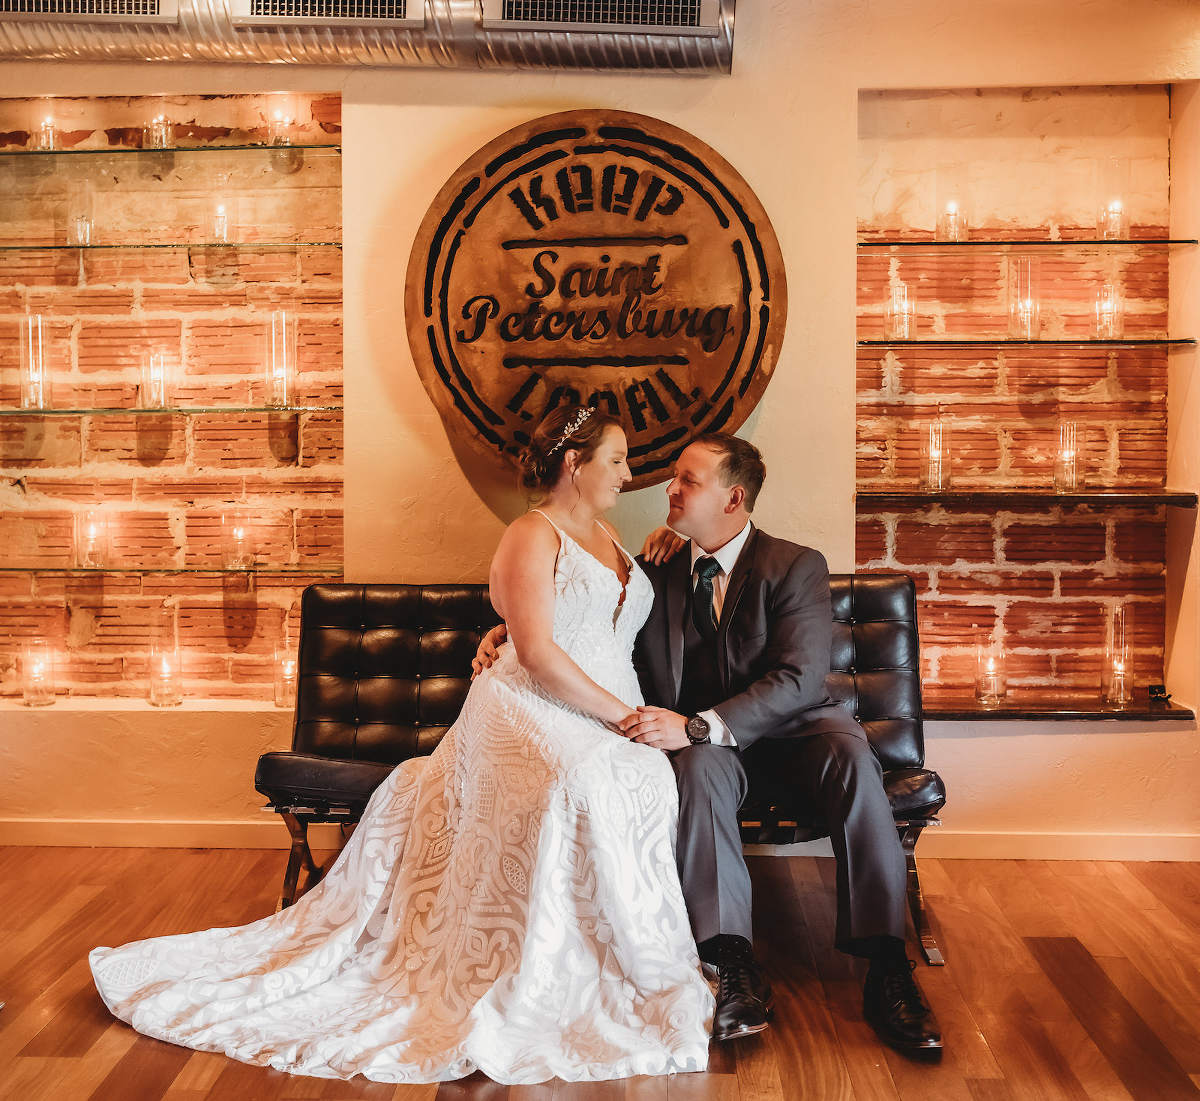 Florida Bride and Groom Romantic Wedding Portrait Inside Historic Venue in Downtown Saint Petersburg, Keep Local Custom Sign, Exposed Brick with Candlelight Lighting, Bride Wearing Blush By Hayley Paige Ivory Delta Gown Style 1751   Unique Tampa Bay Wedding Venue NOVA 535 in Downtown St. Petersburg